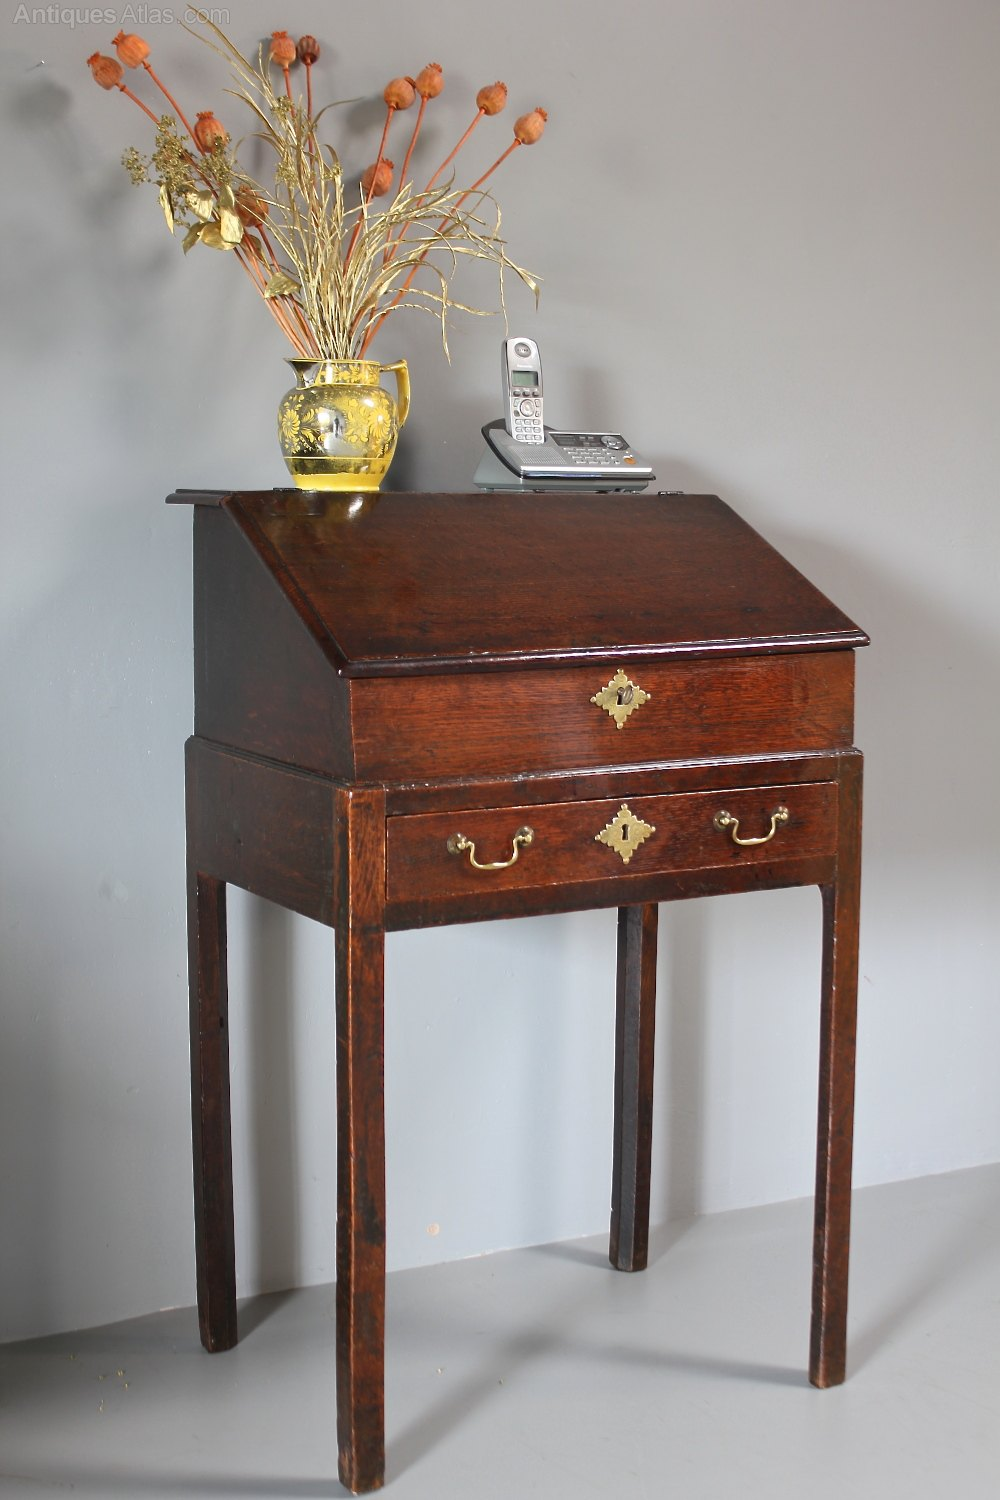 Picture of: Small 19th Century Slant Top Desk On Legs R415 Antiques Atlas